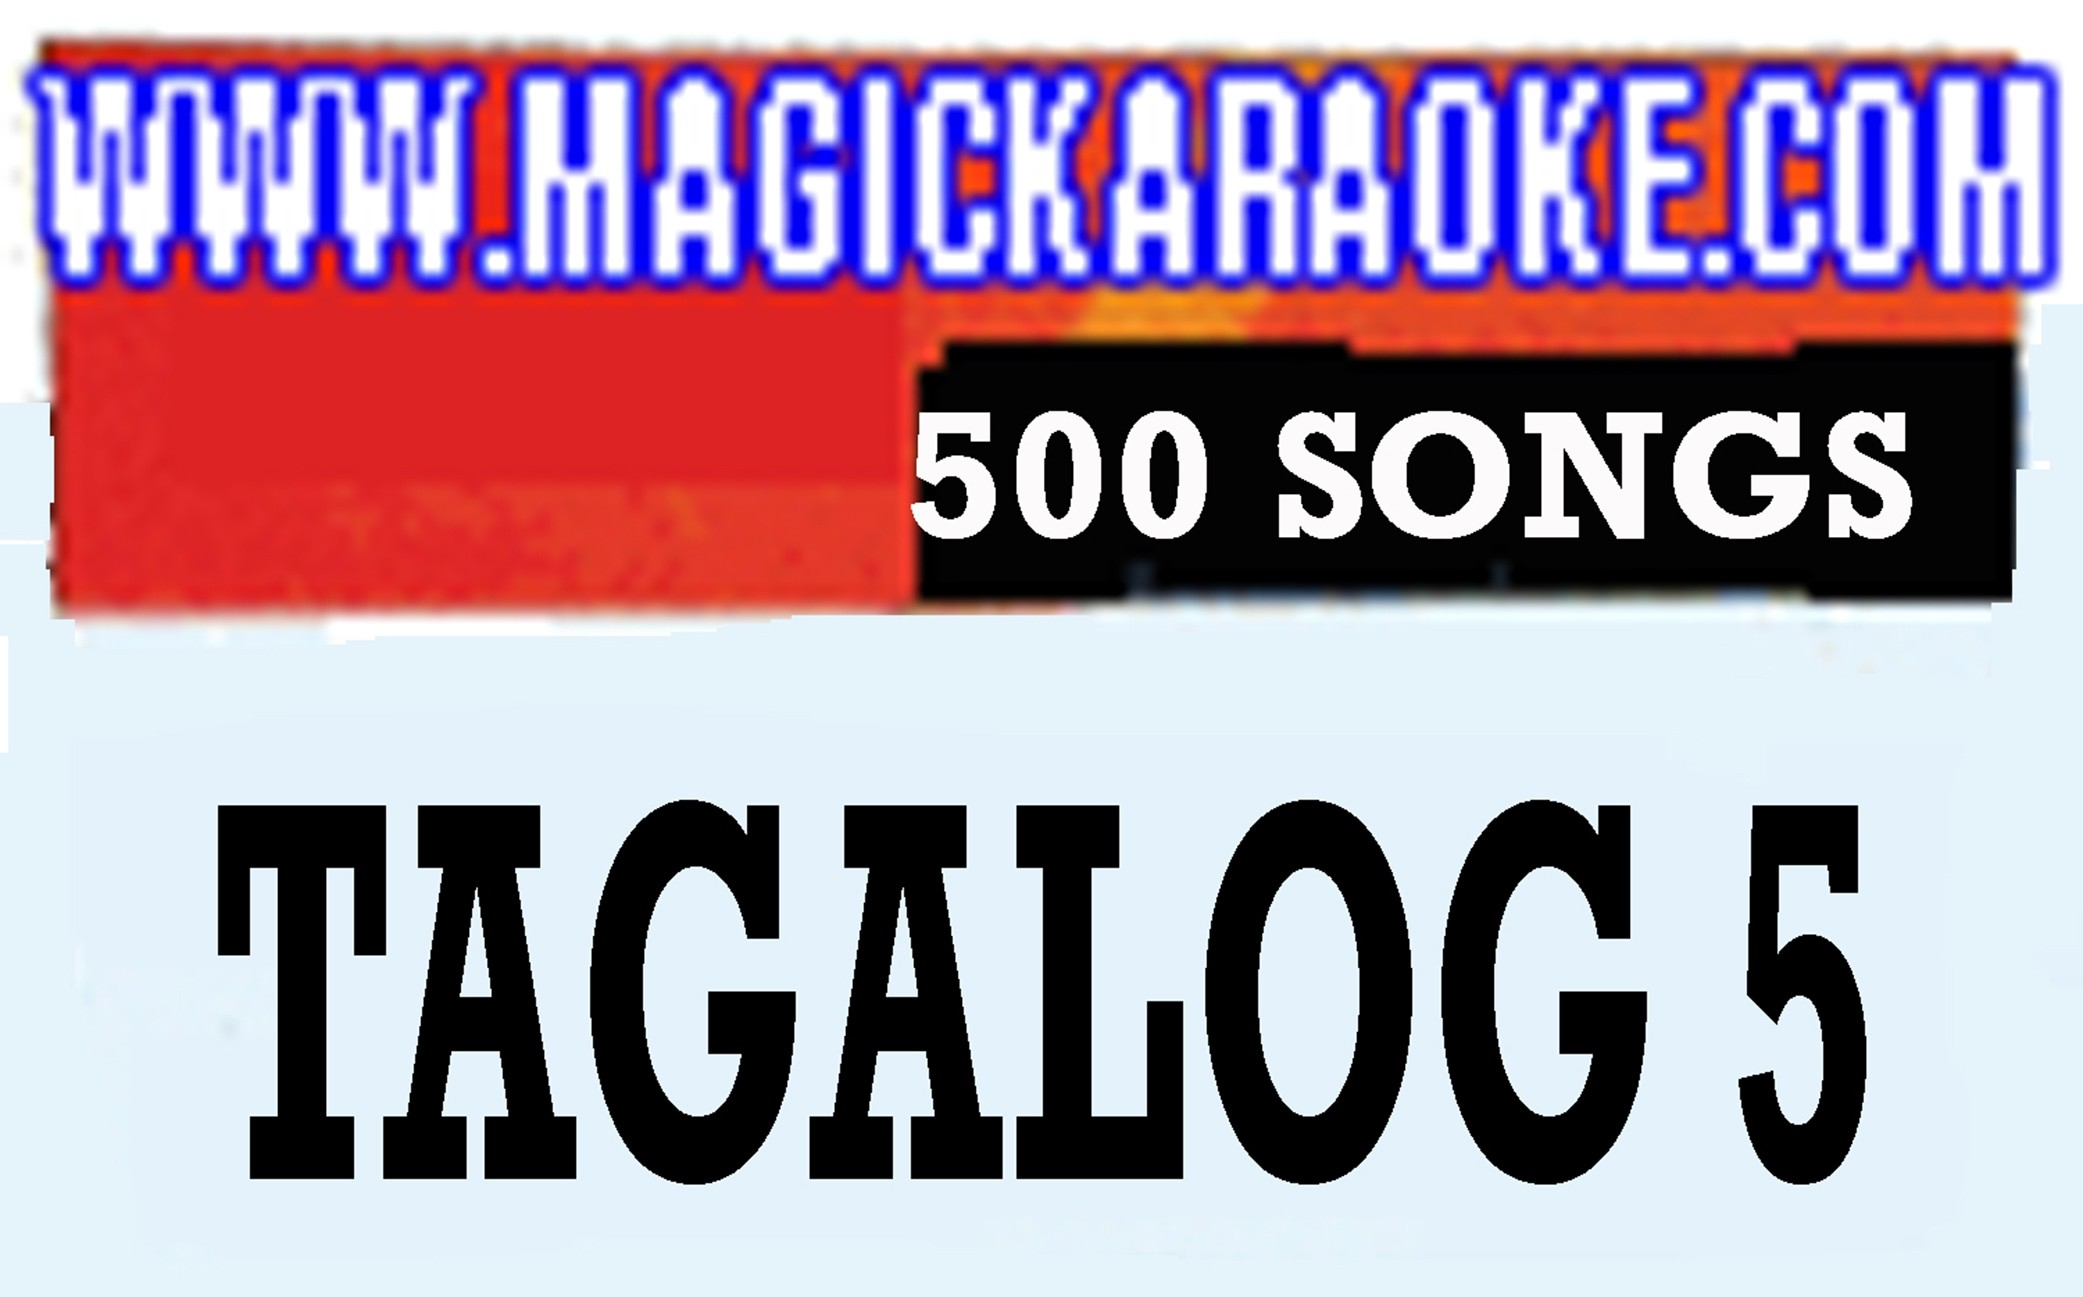 Magic Sing Tagalog 5 -Make an Offer and $ave More